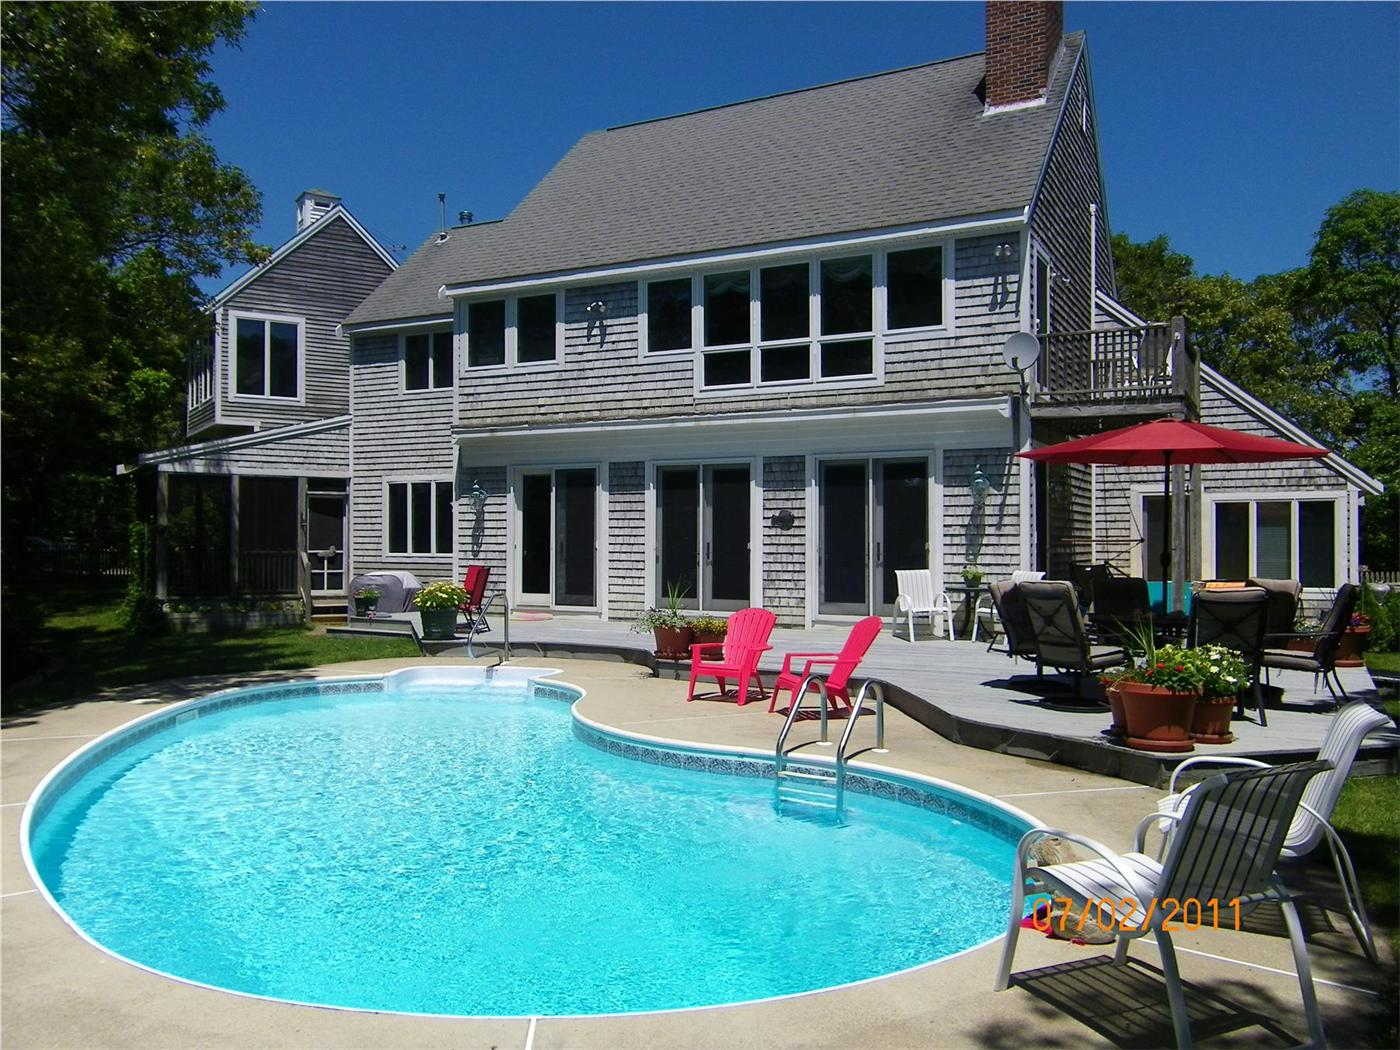 centerville vacation rental home in centerville ma 02632 id 19809